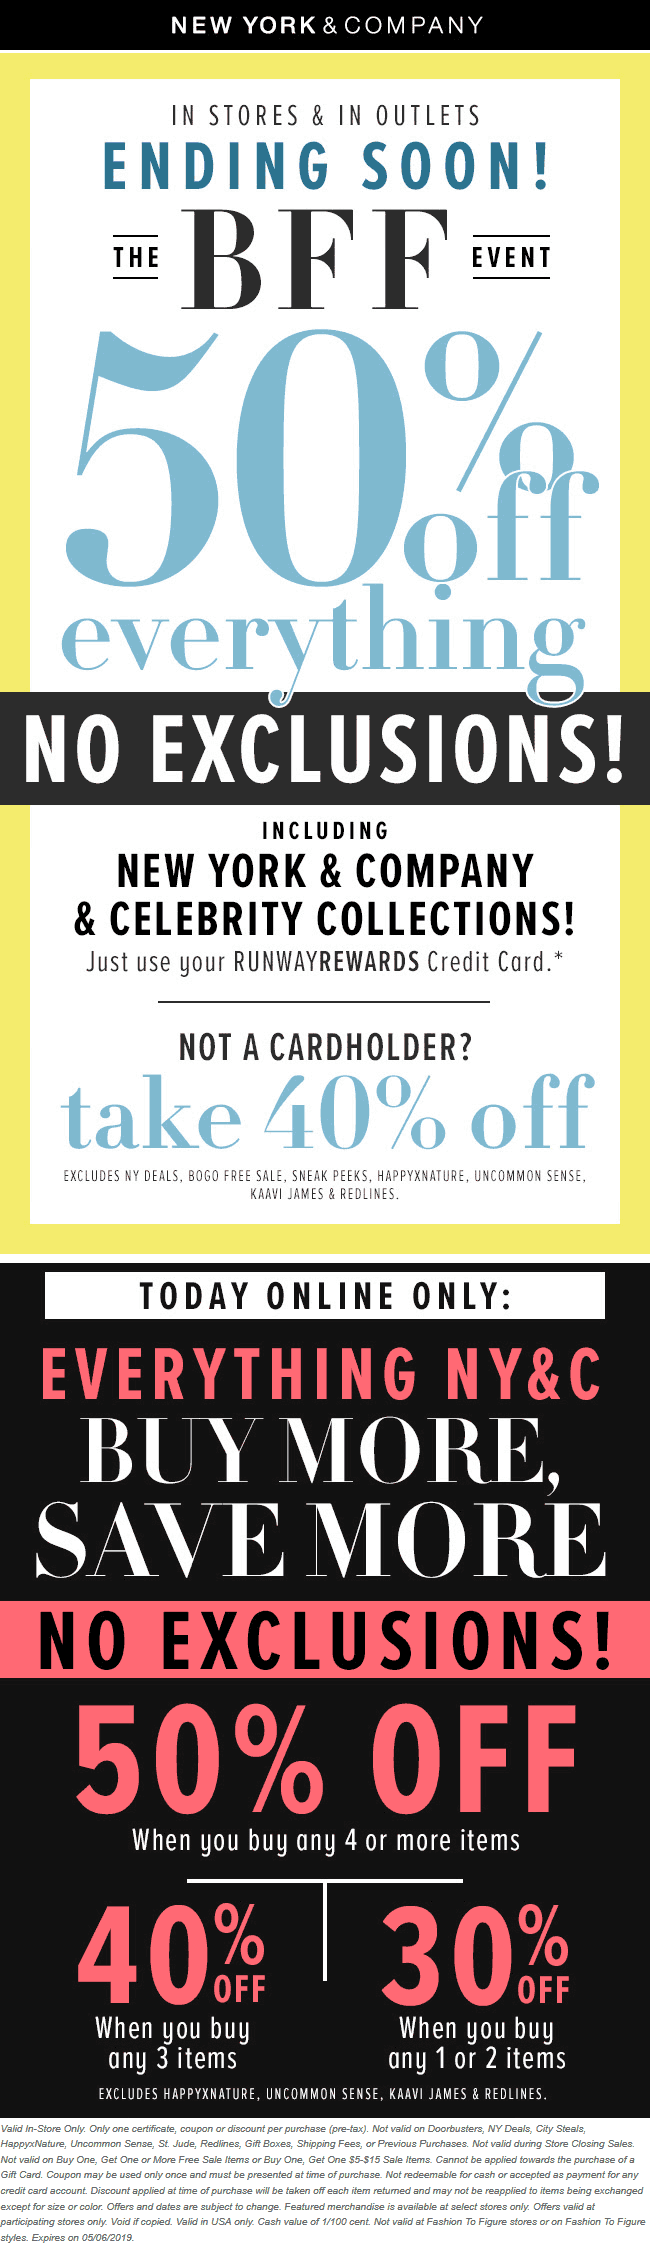 NewYork&Company.com Promo Coupon 40% off everything at New York & Company, ditto online